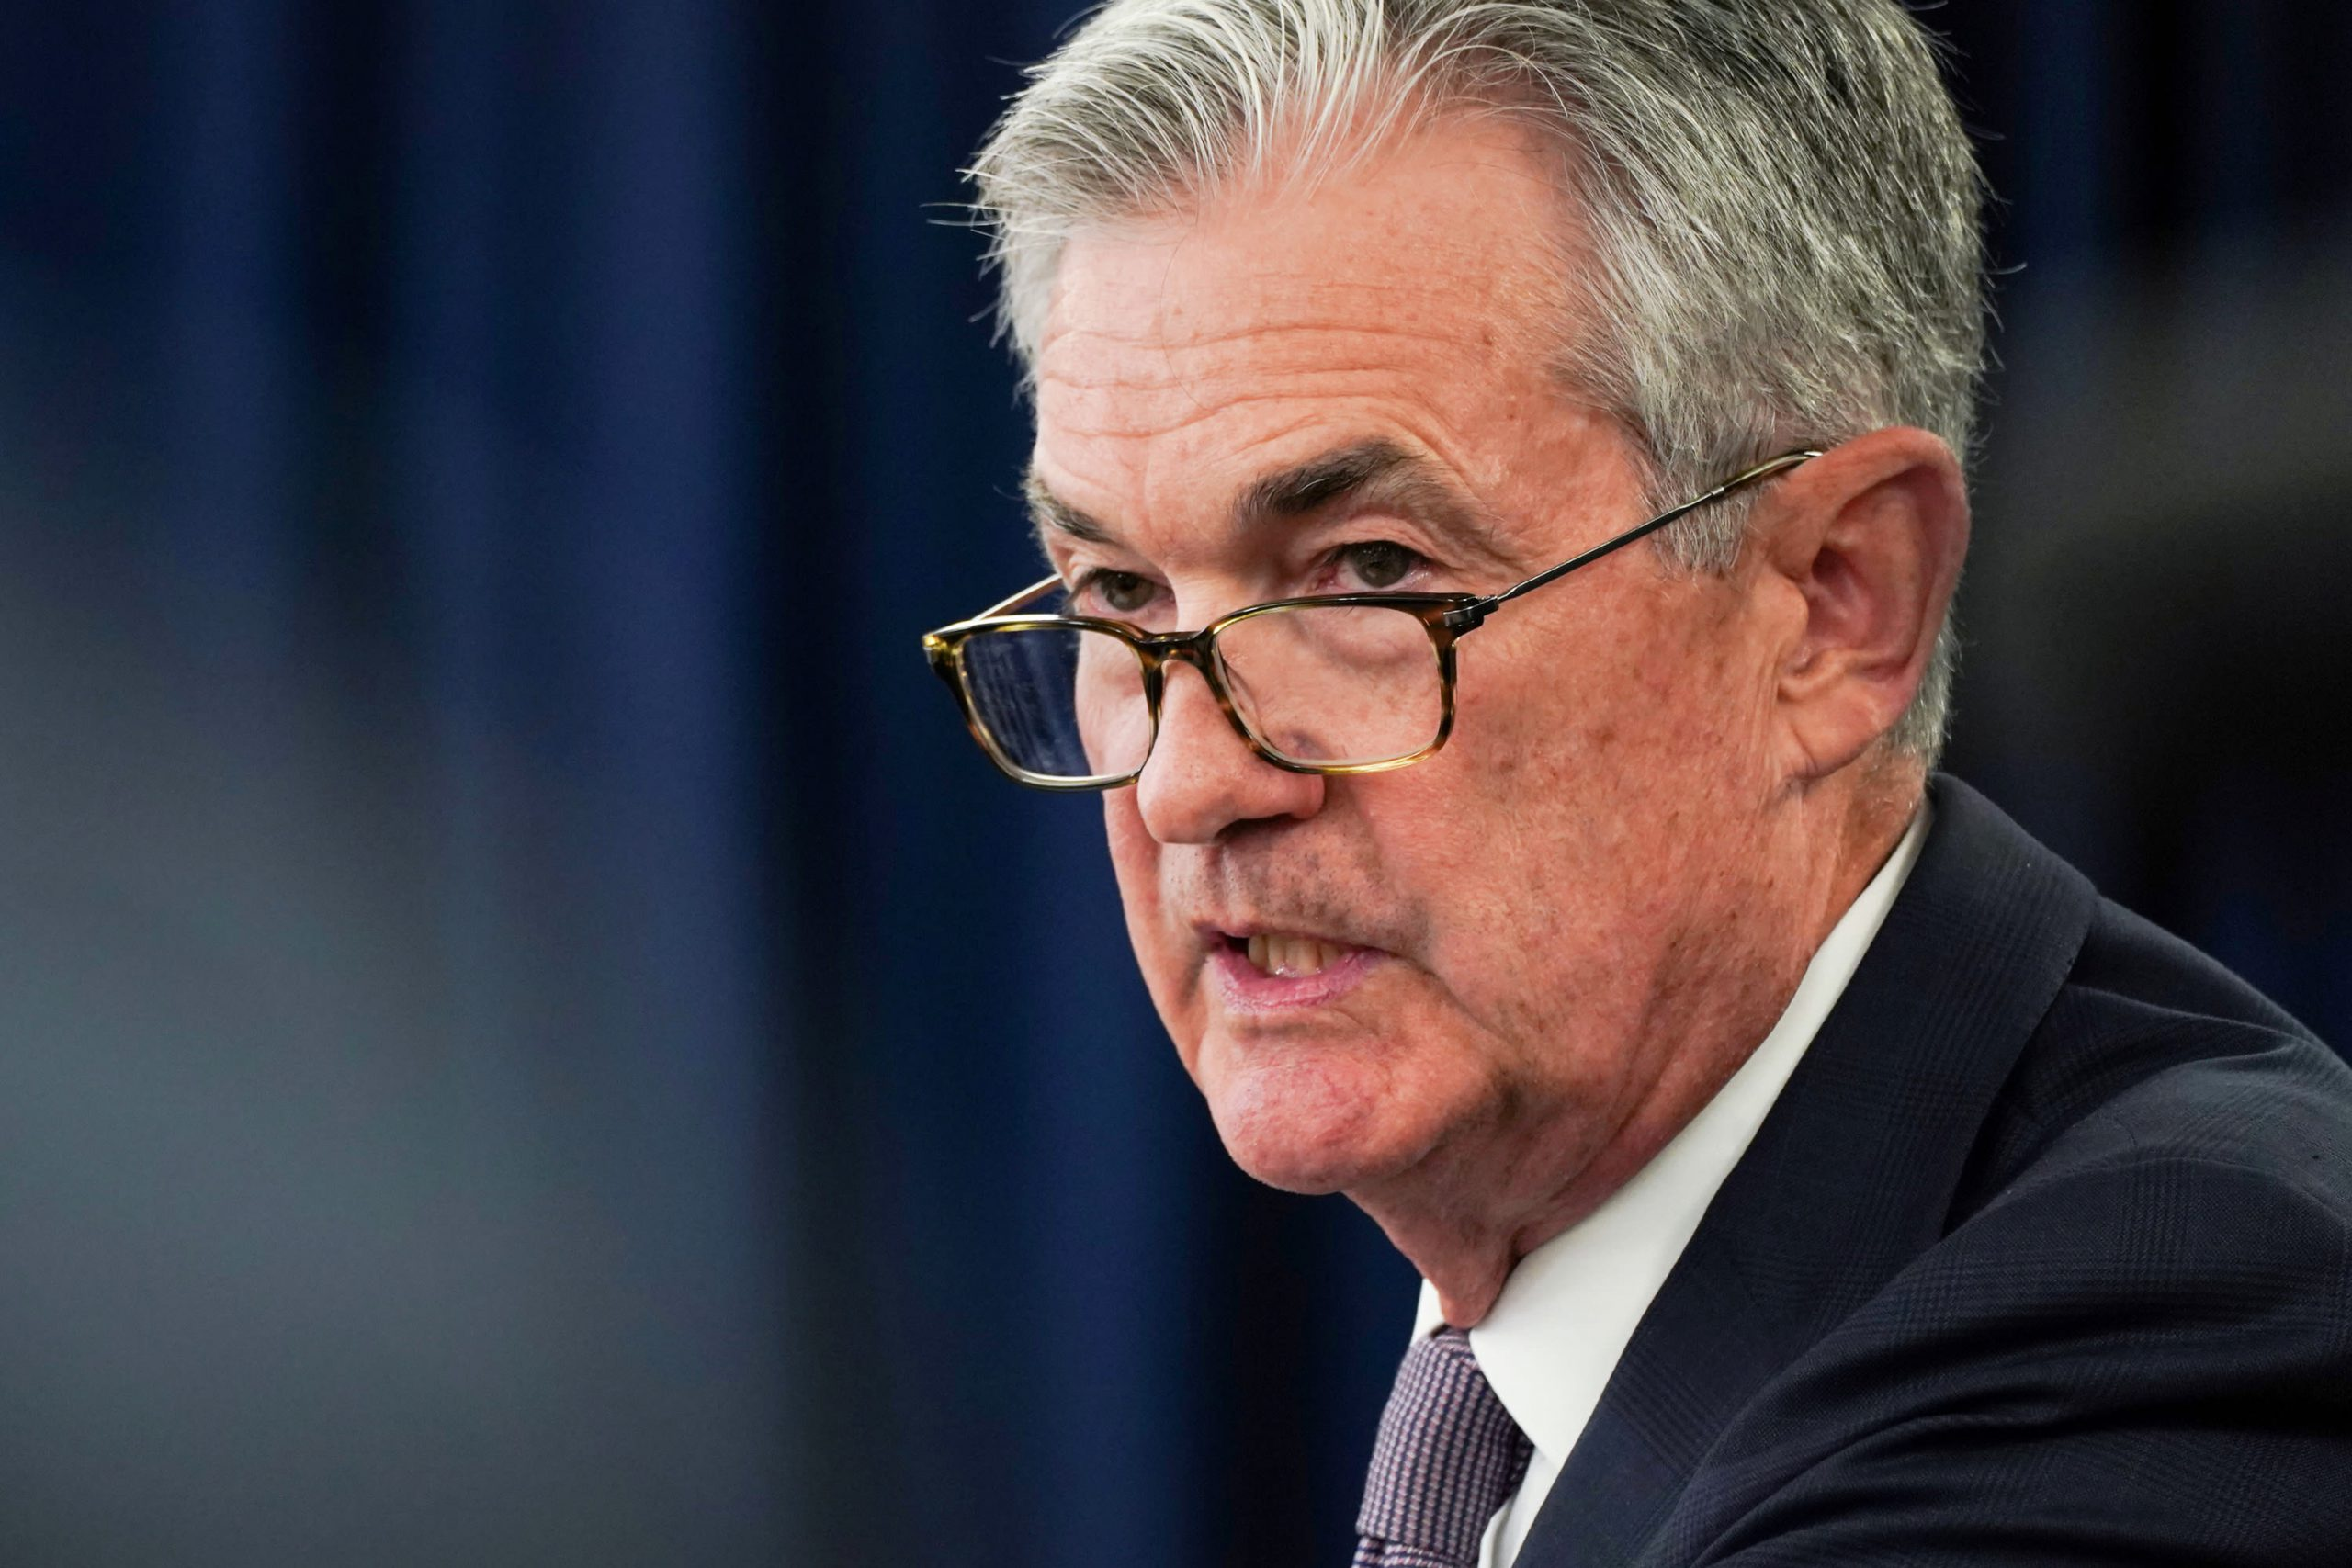 Fed pledges to keep rates near zero until full employment, inflation come back